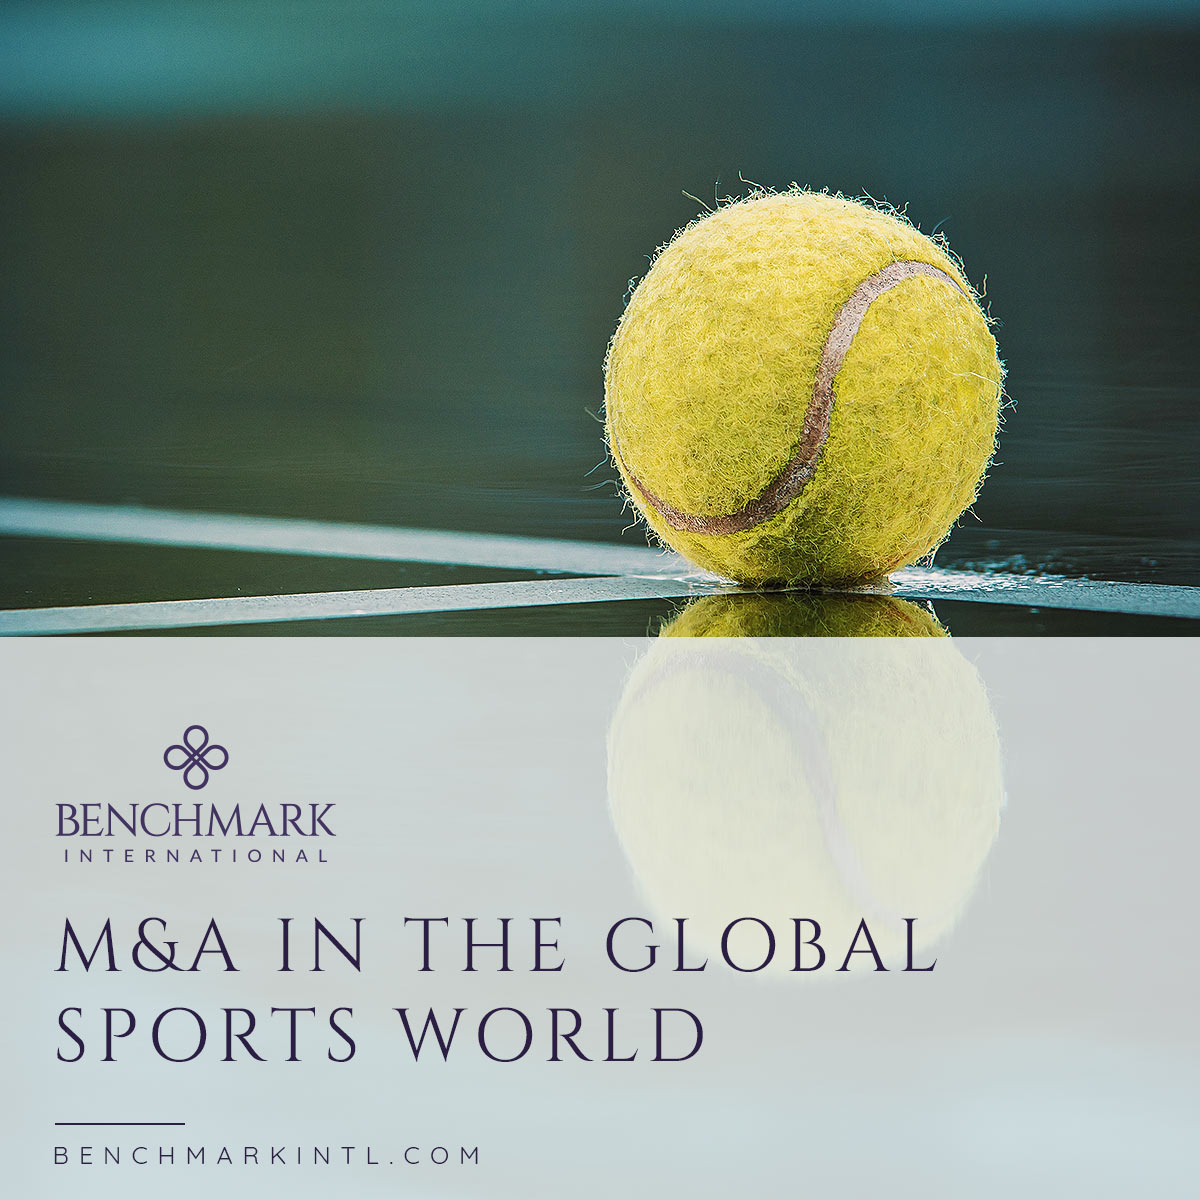 M&A_in_the_Global_Sports_World_social